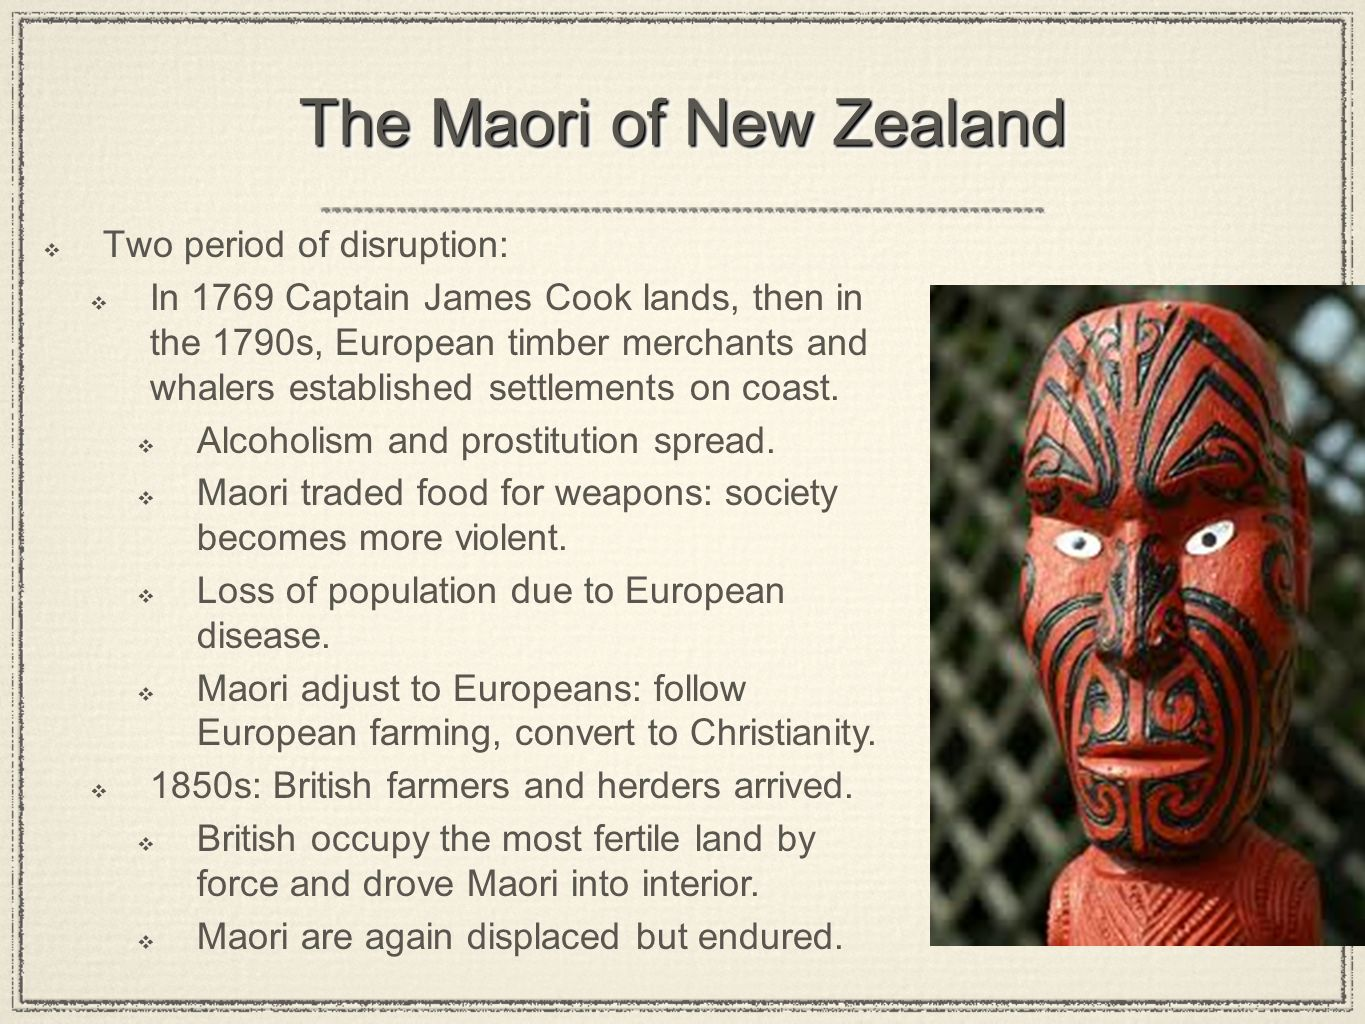 The Maori of New Zealand  Two period of disruption:  In 1769 Captain James Cook lands, then in the 1790s, European timber merchants and whalers established settlements on coast.